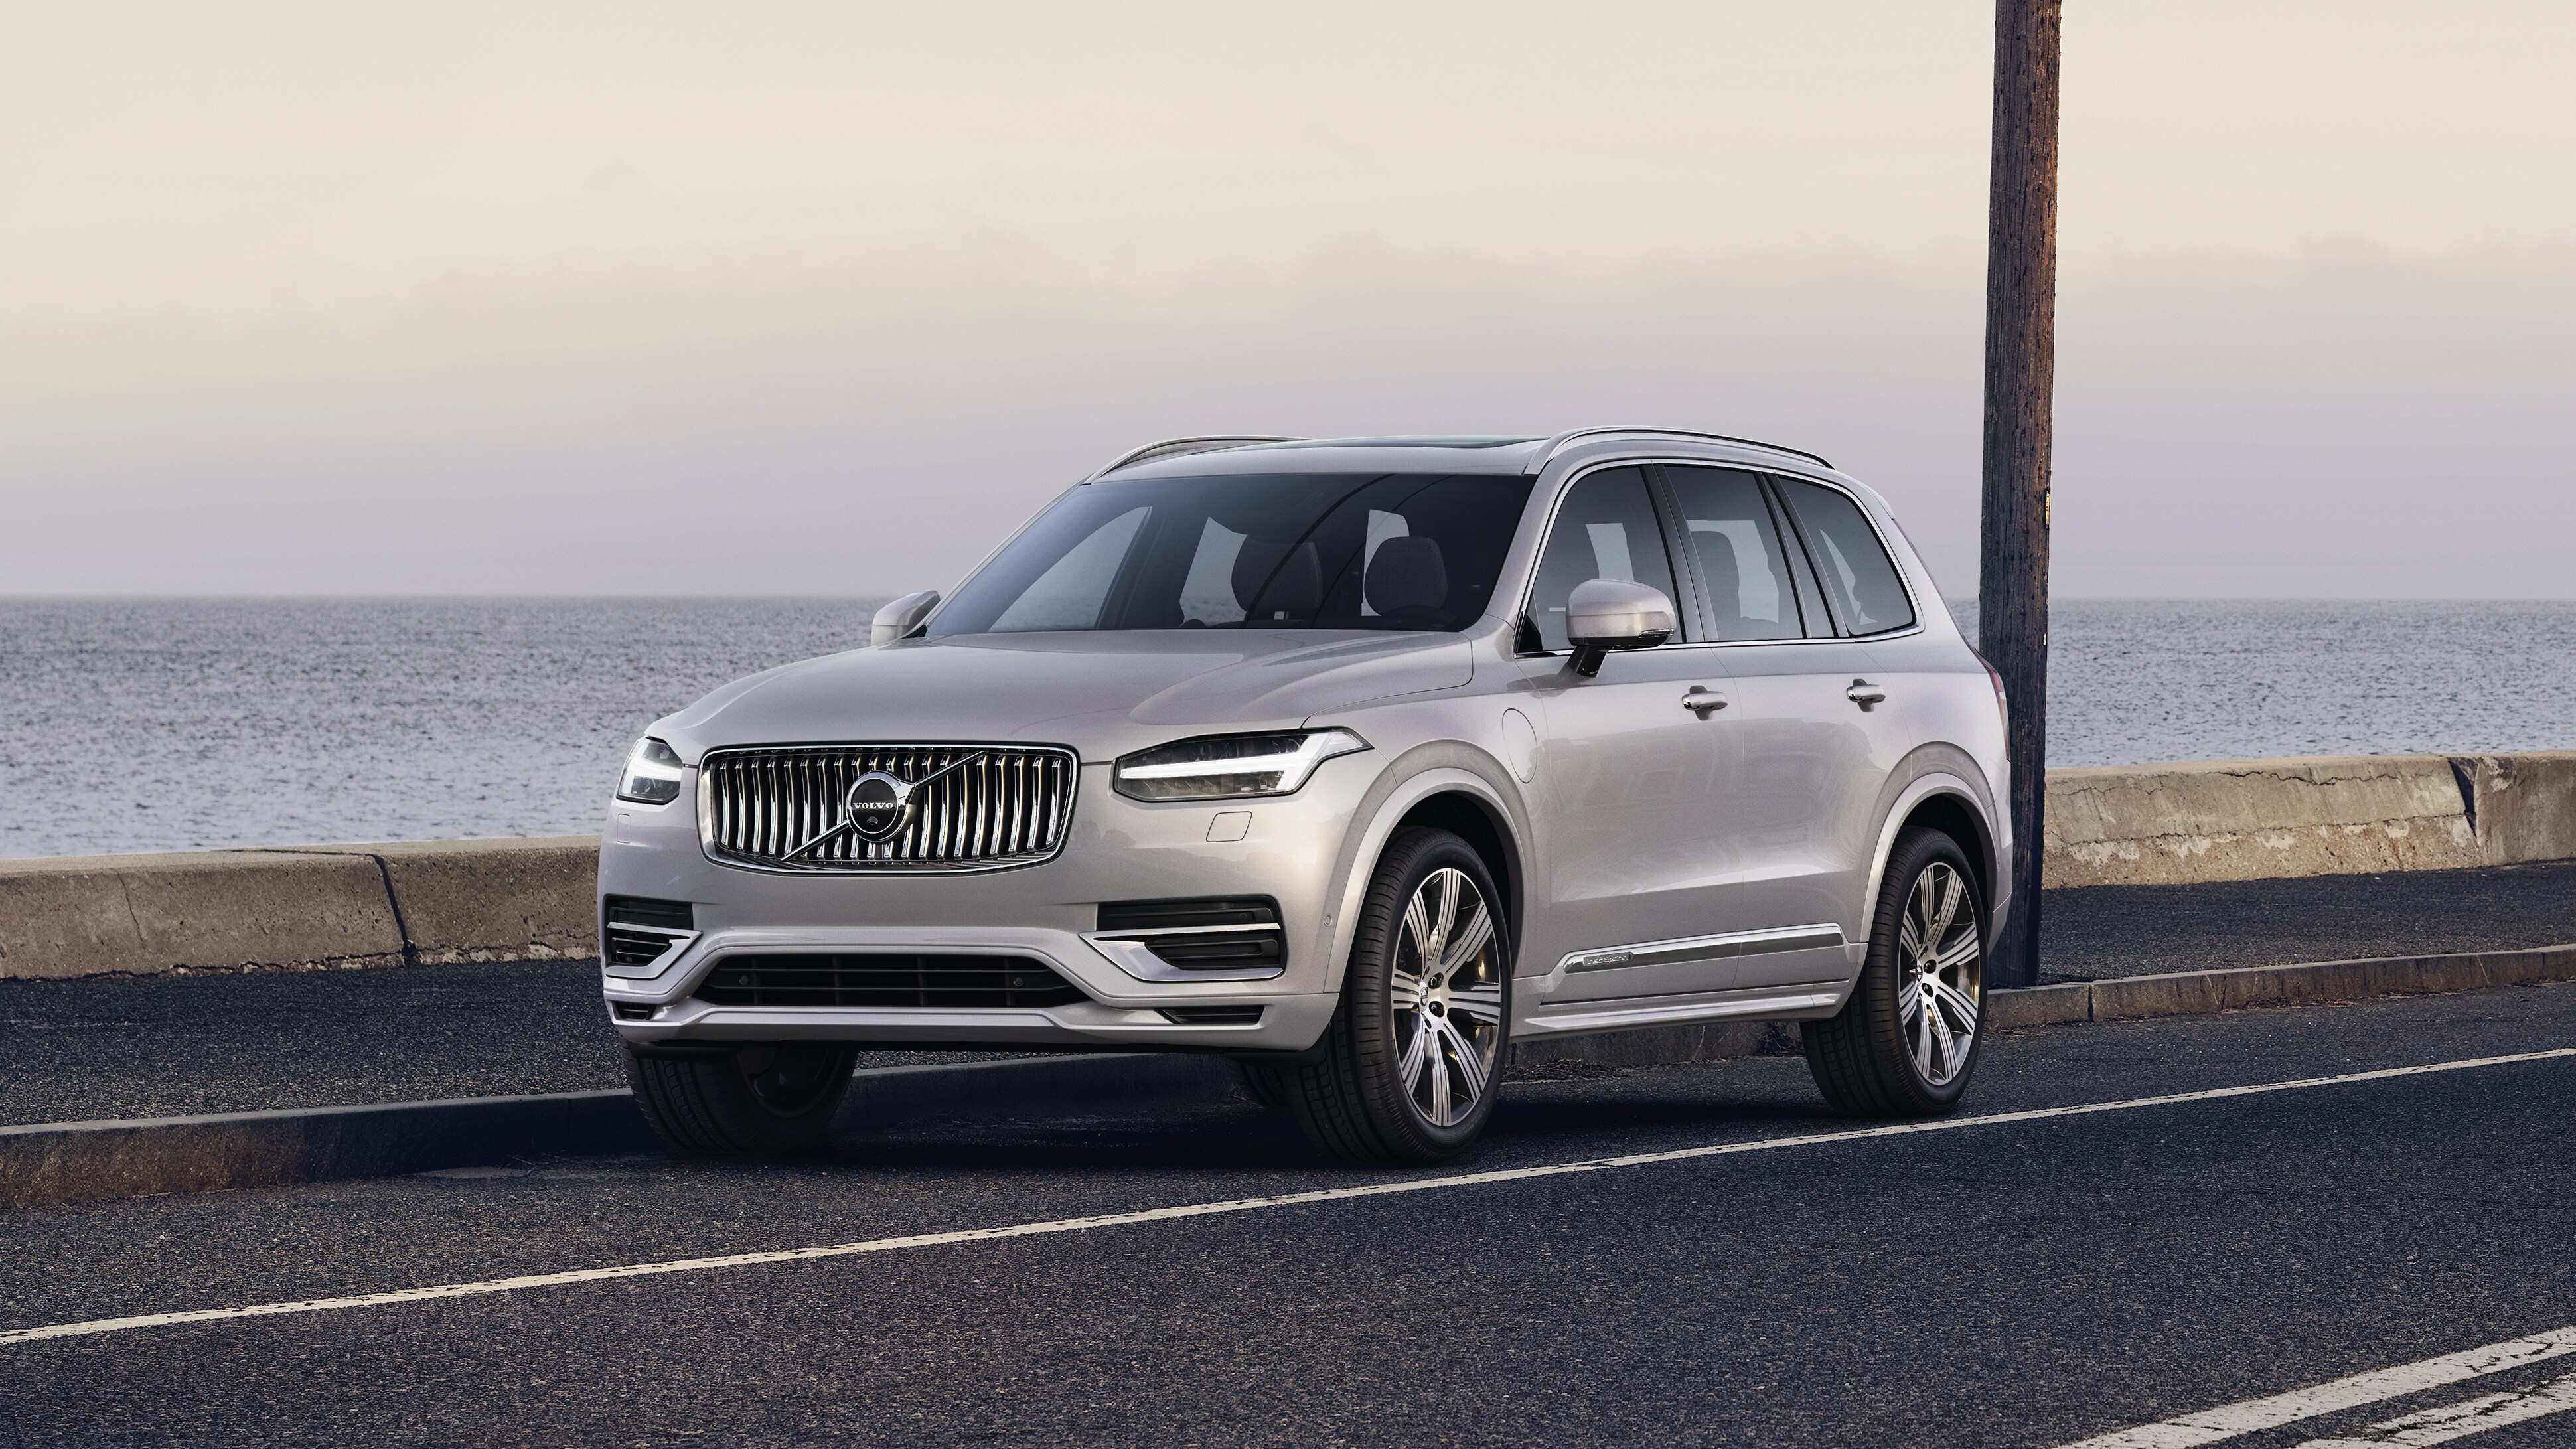 Offre LLD professionnels SUV 7 places Volvo XC90 T8 Twin Engine Momentum